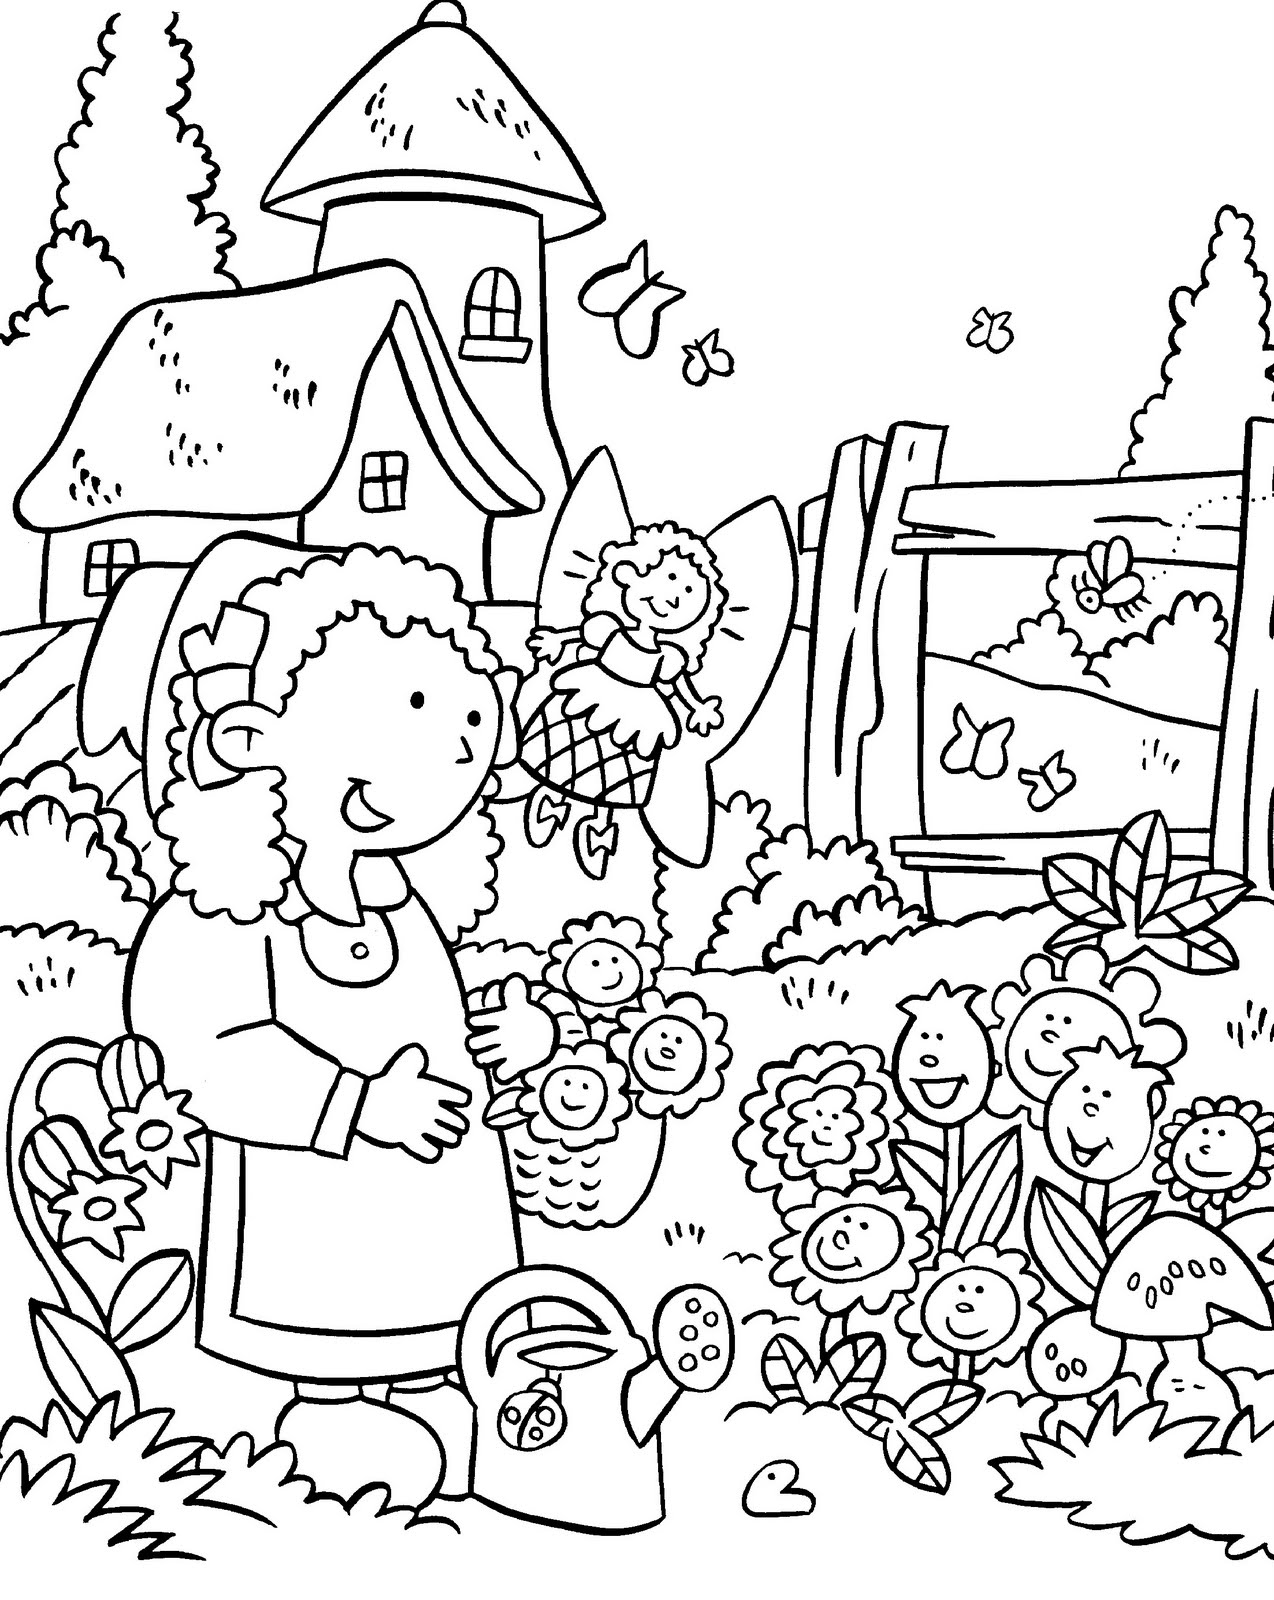 garden pictures to color gardening coloring pages to download and print for free garden to color pictures